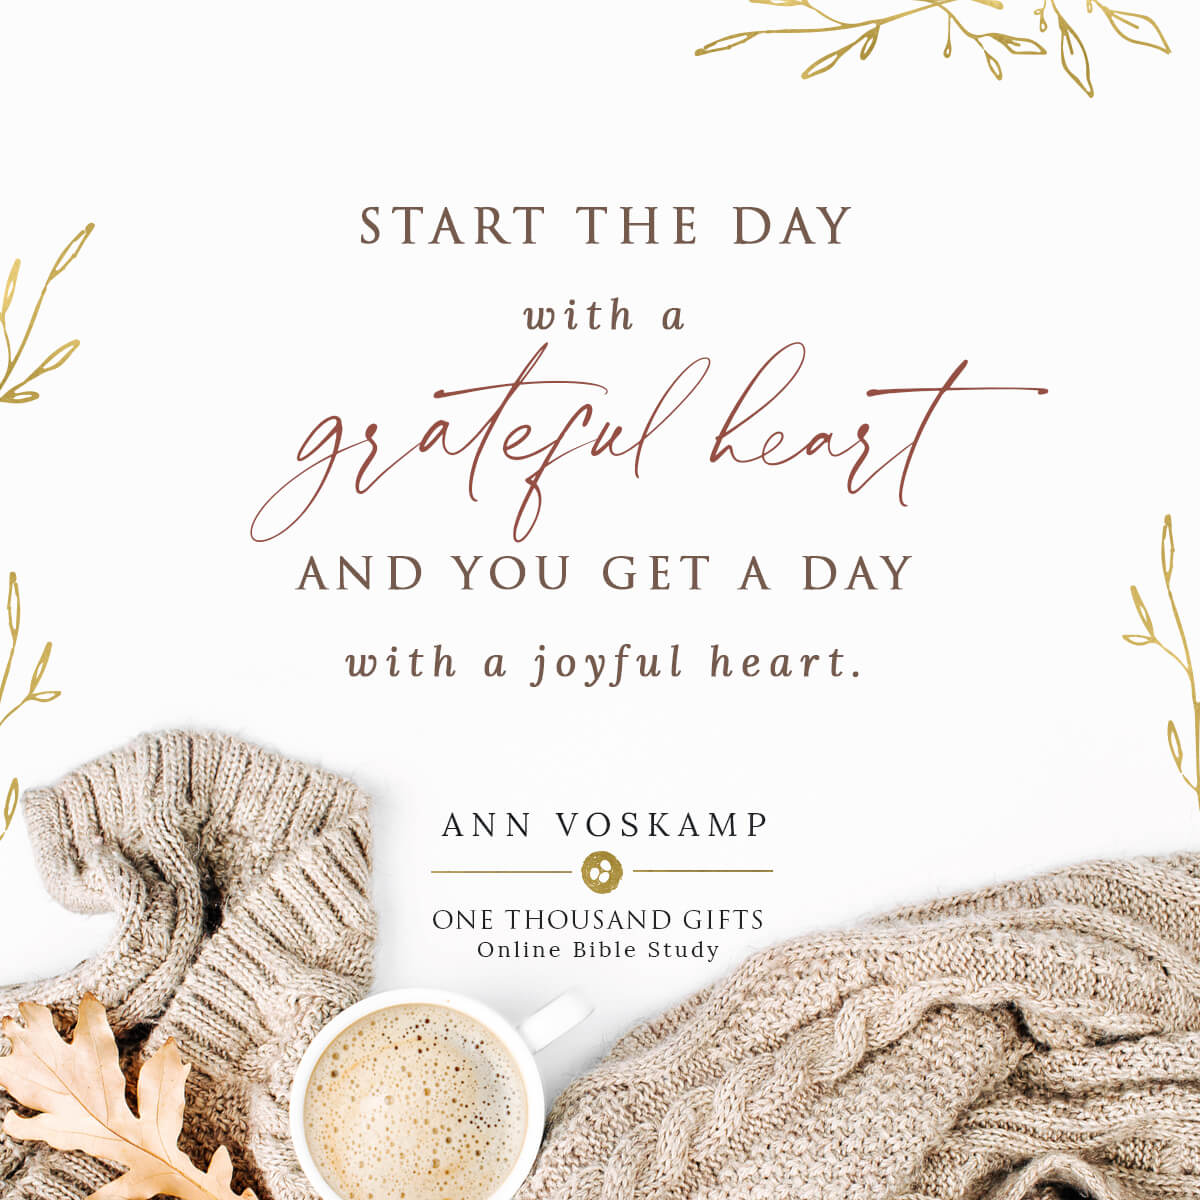 One Thousand Gifts Online Bible Study